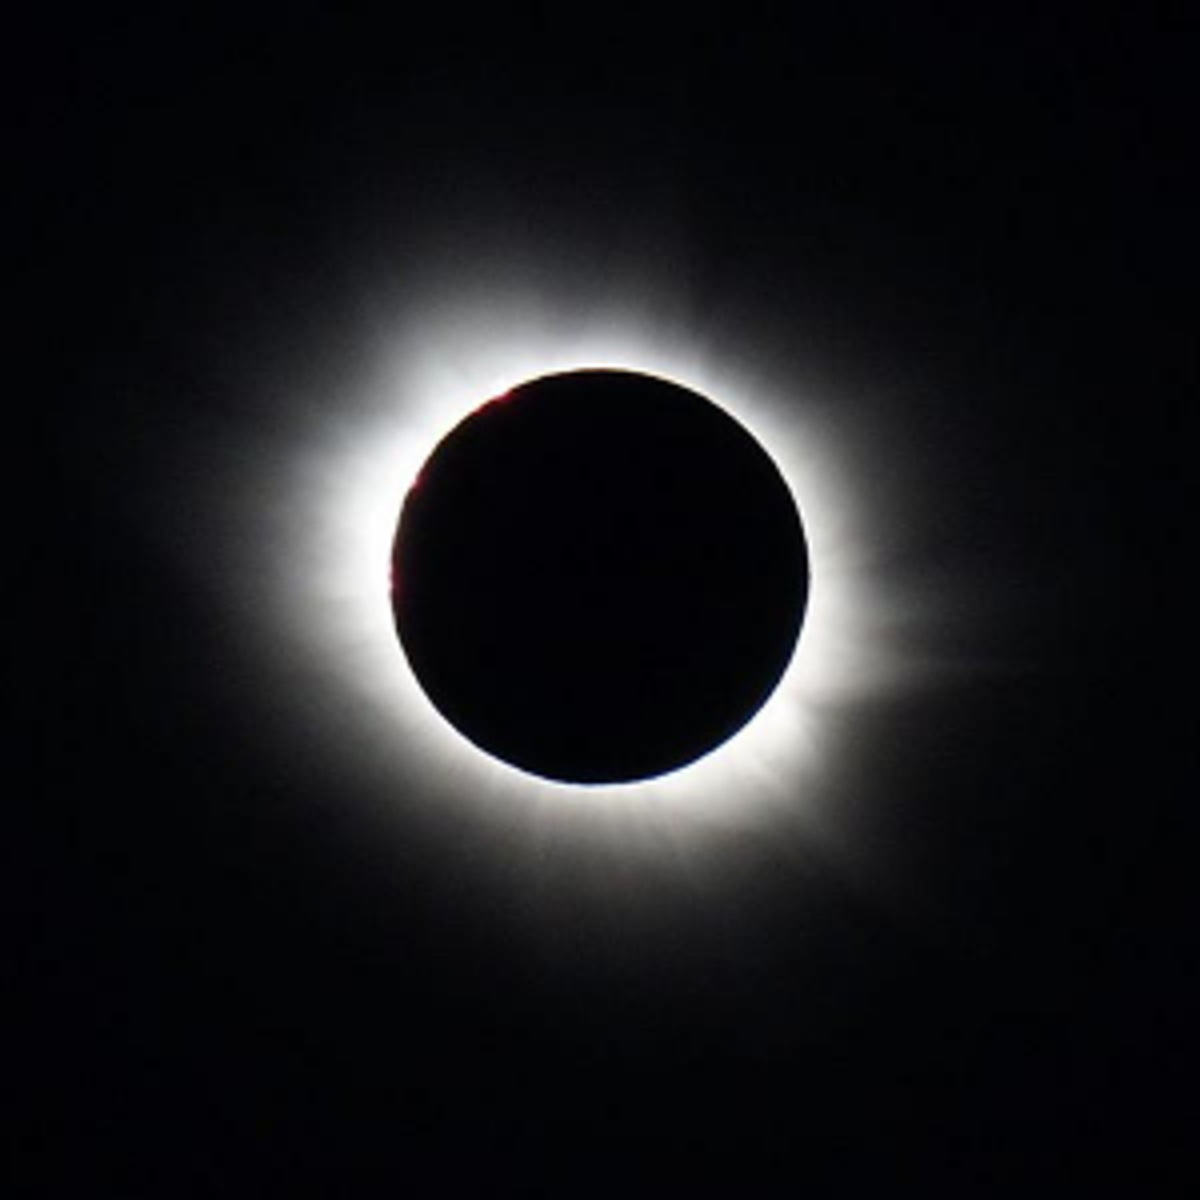 Photo of a total solar eclipse on March 20, 2015.